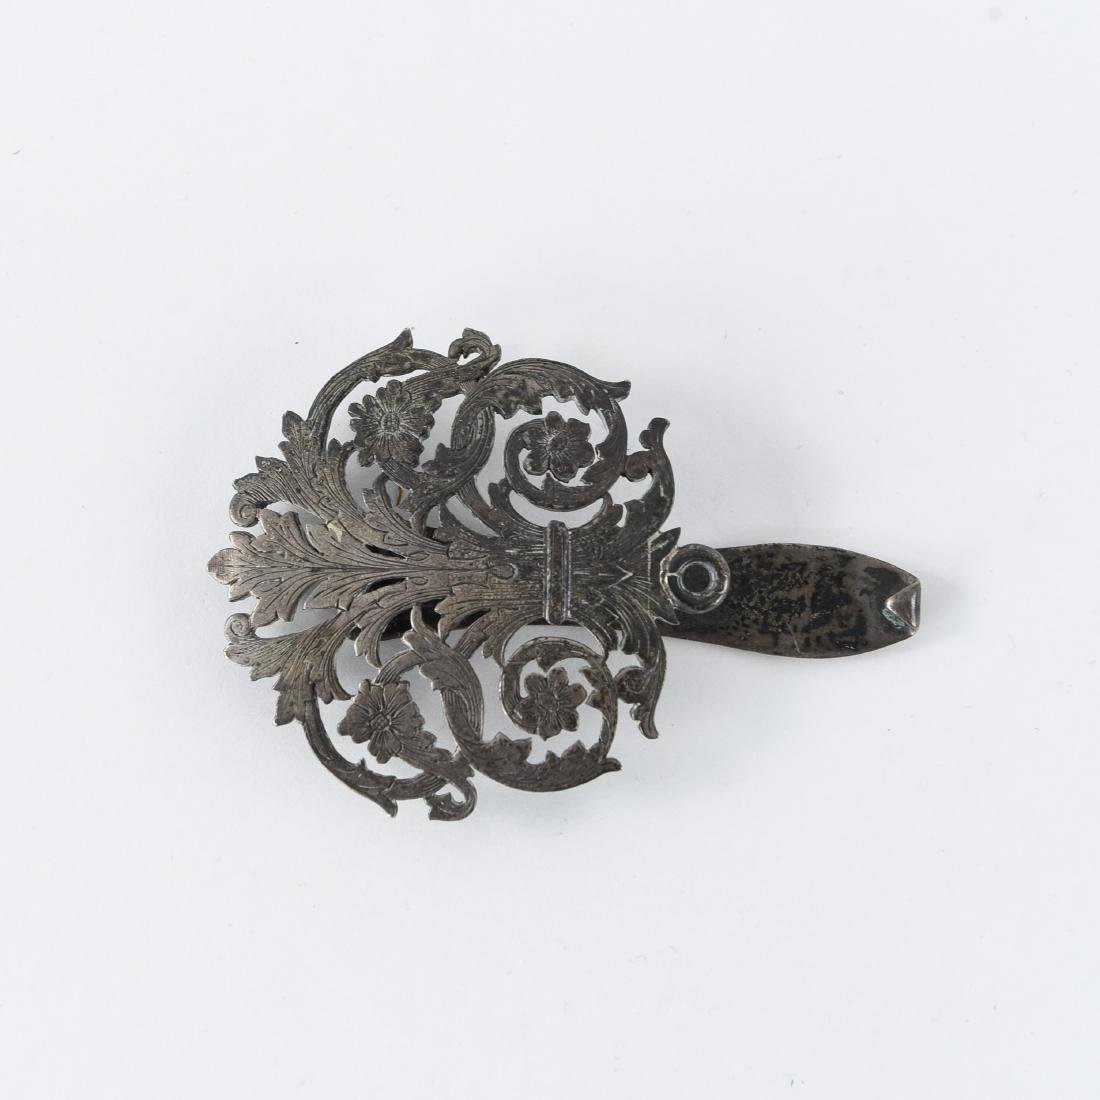 TIFFANY SILVER CHATELAINE CLIP